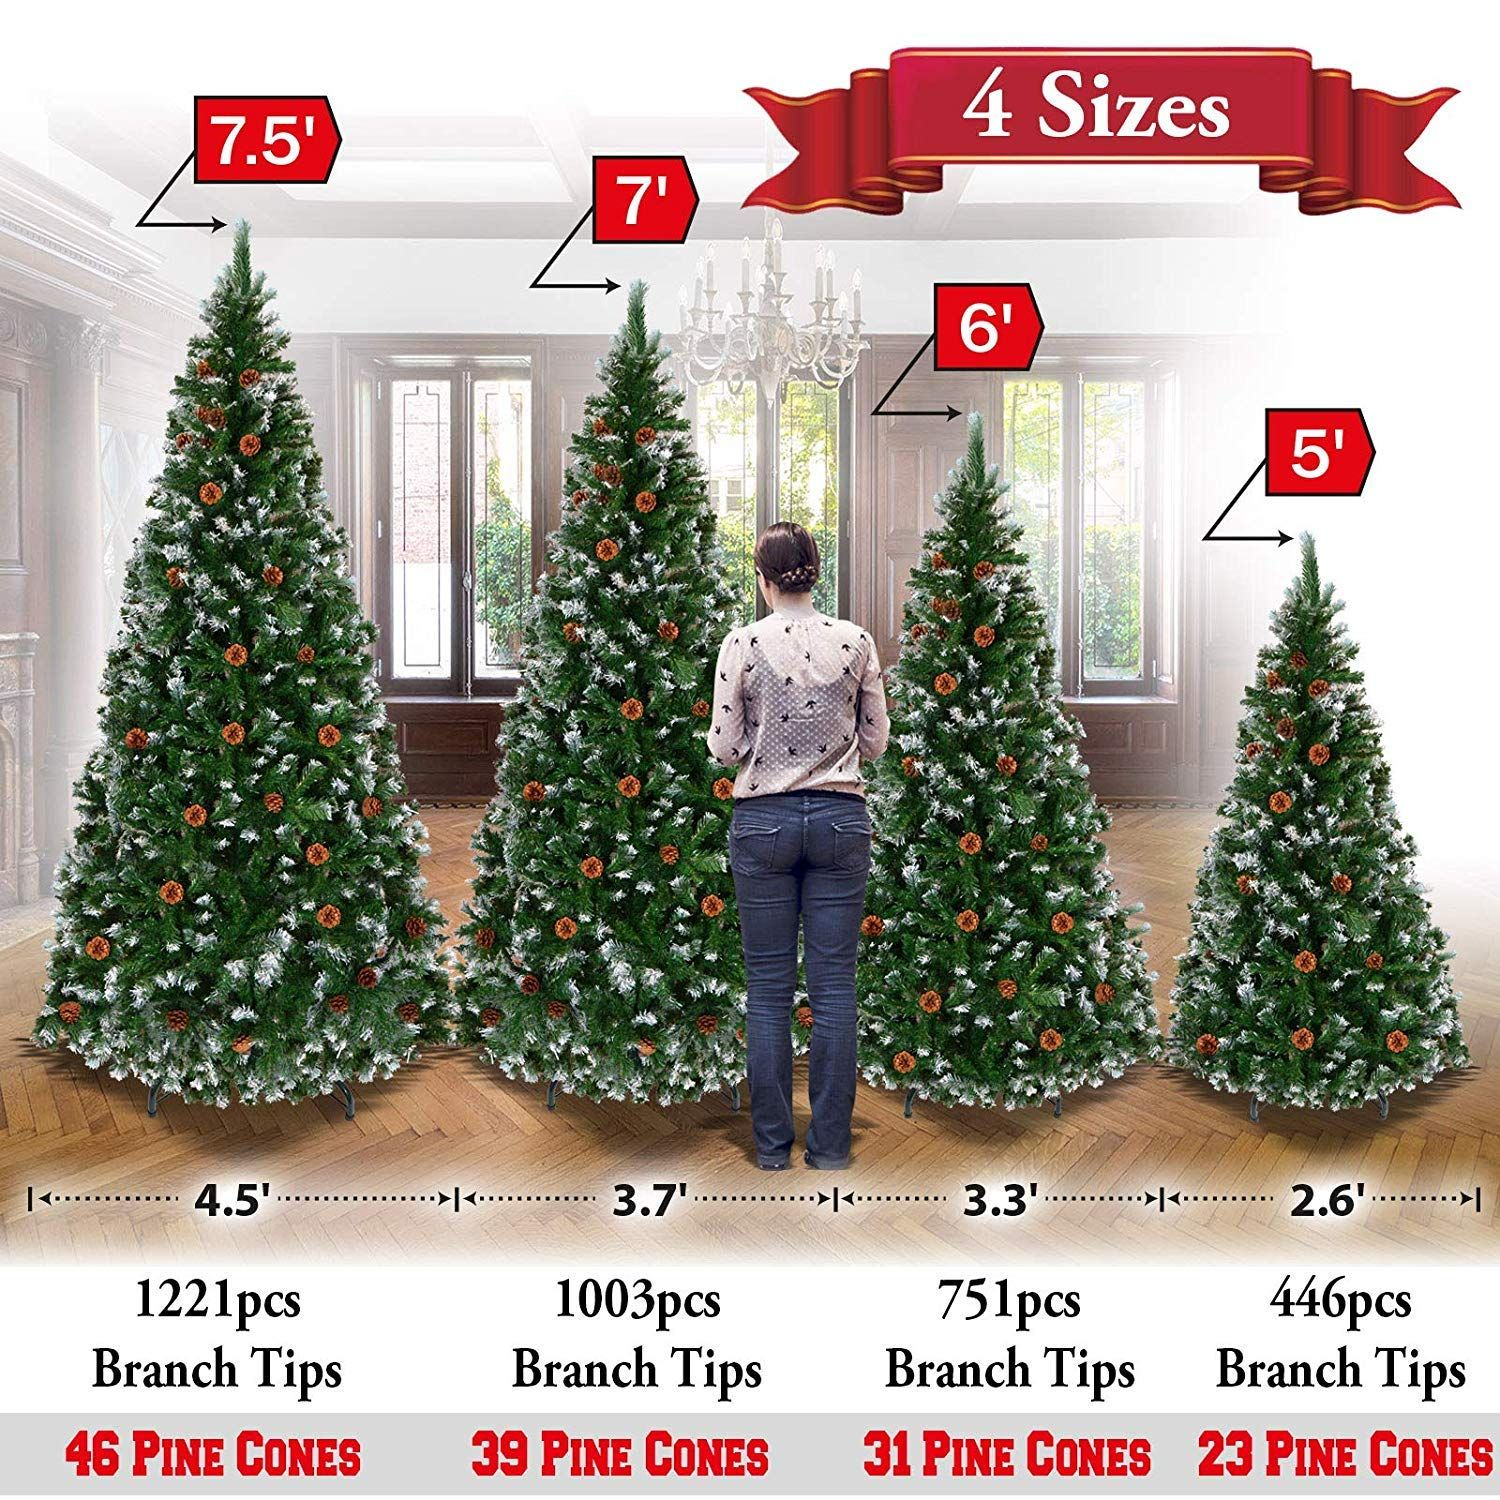 Christmas Snow Tree Tipped With Pine Cones With Steel Stand Base 5ft 6ft 7ft 7 5ft 7 5ft And1221 Tips An Artificial Christmas Tree Snow Tree Christmas Snow